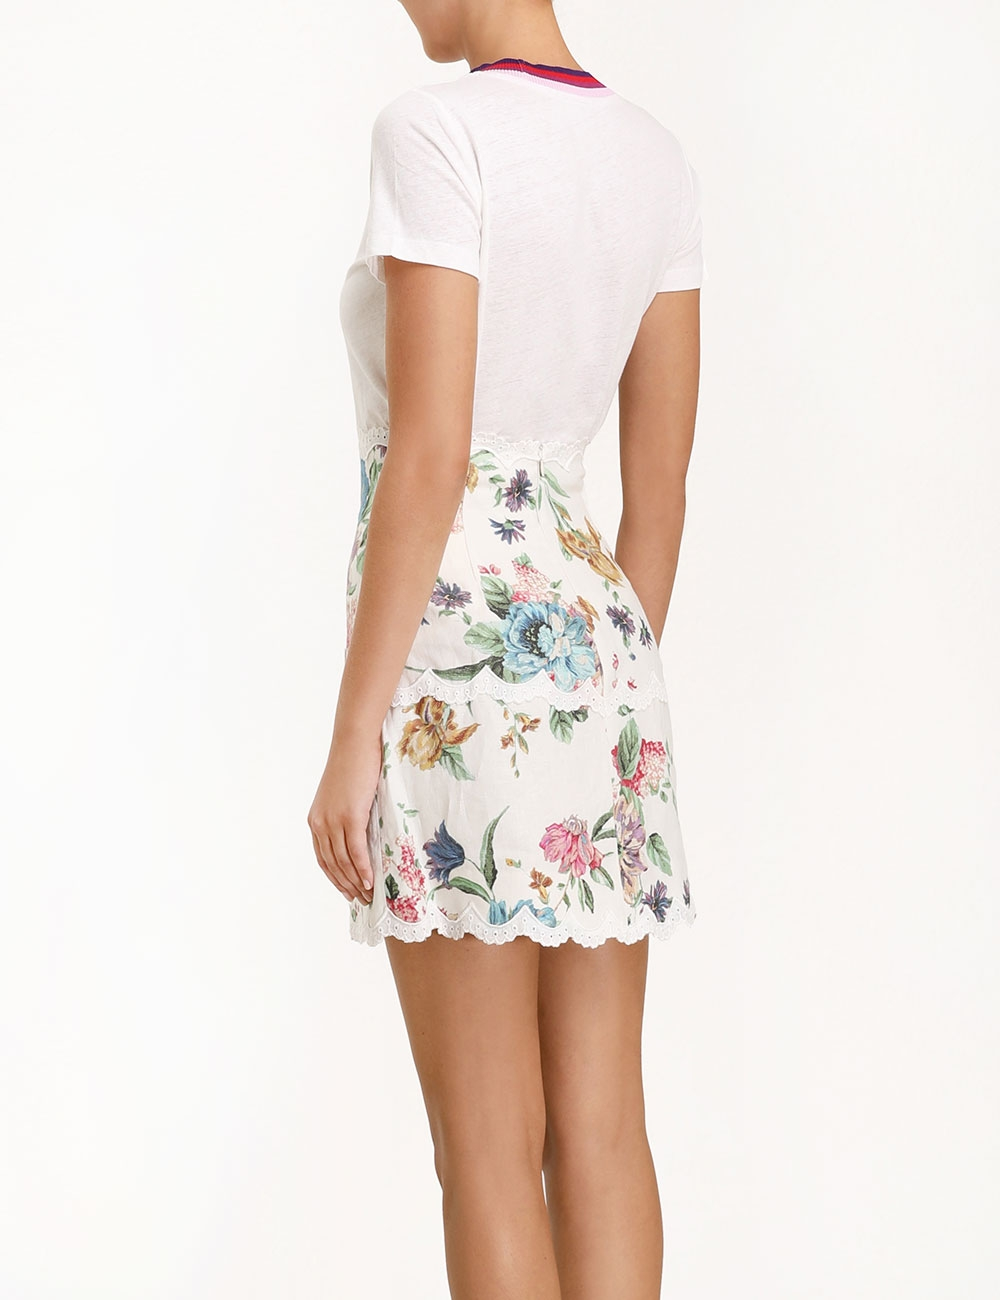 Ninety-Six Scallop Skirt